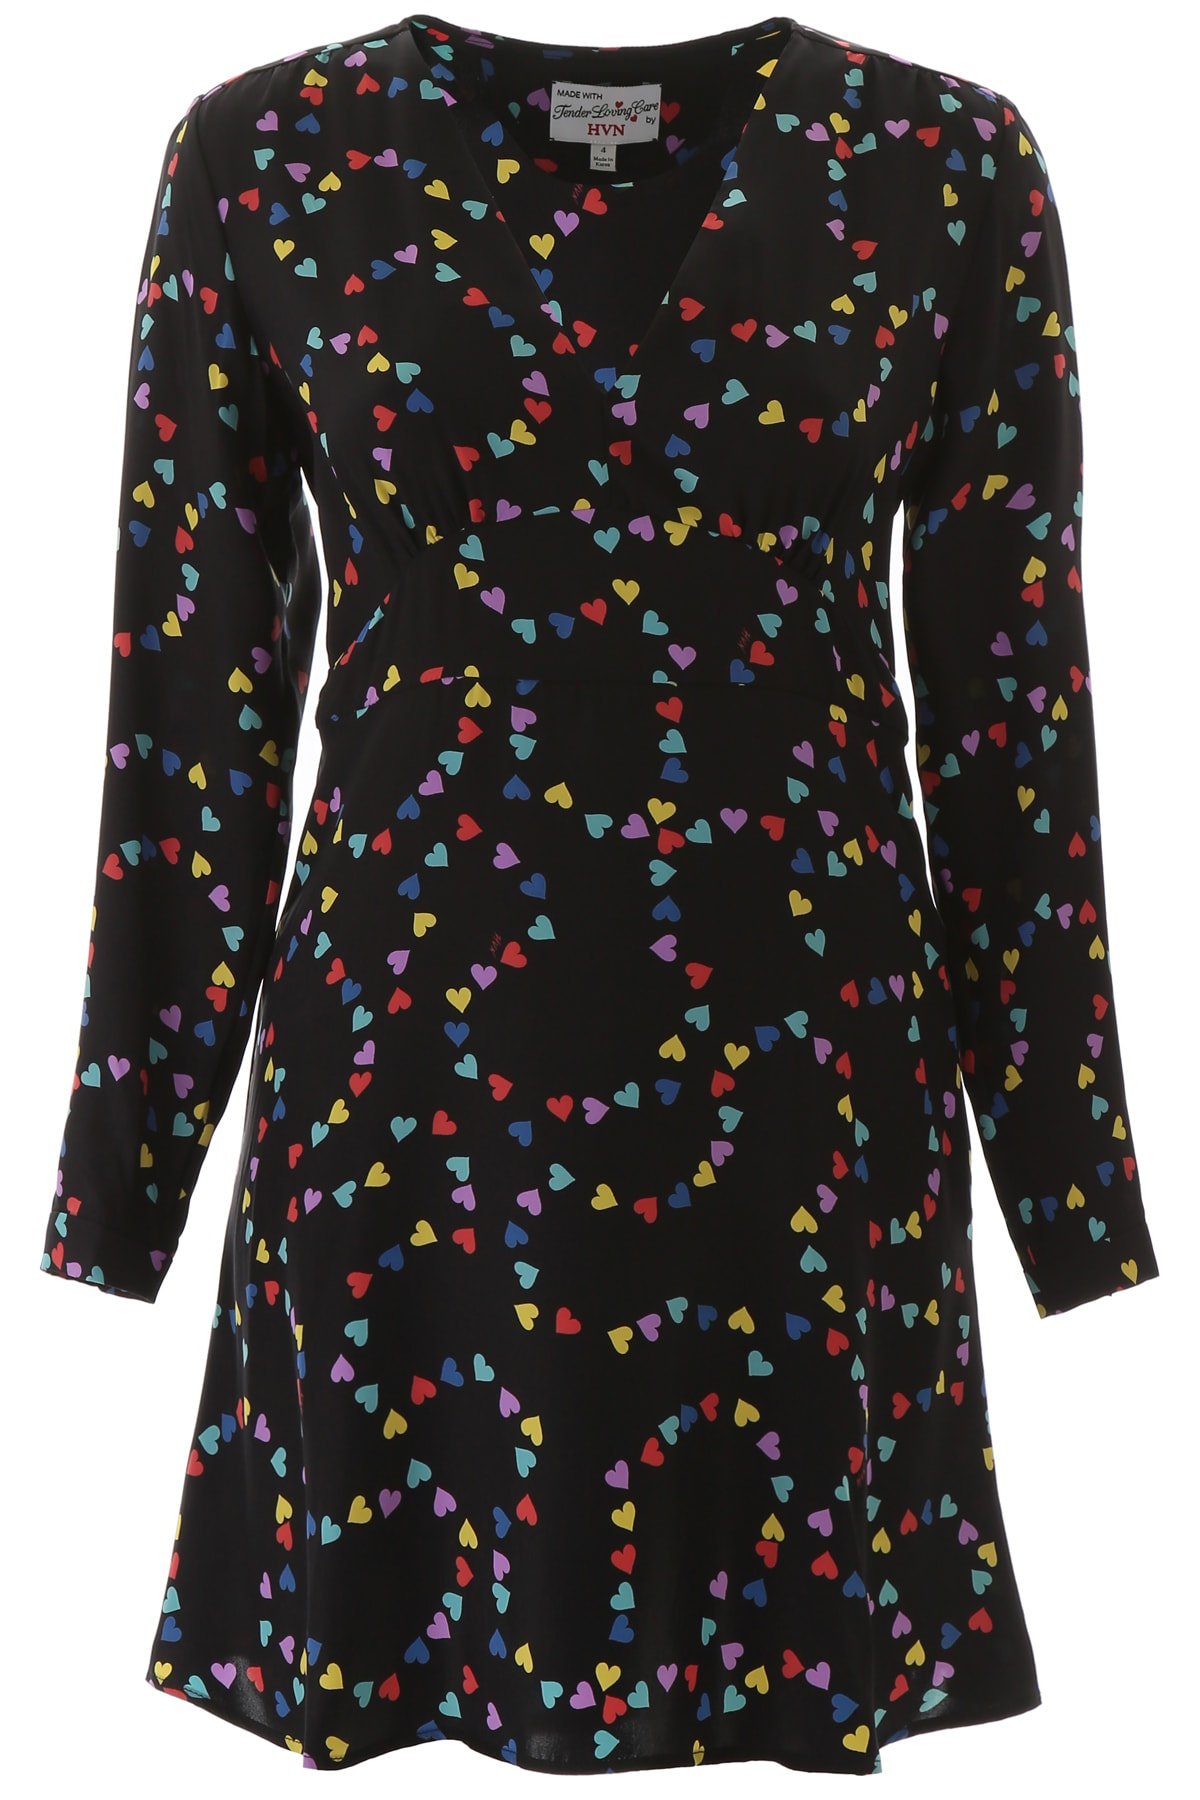 HVN Rainbow Hearts Mini Dress